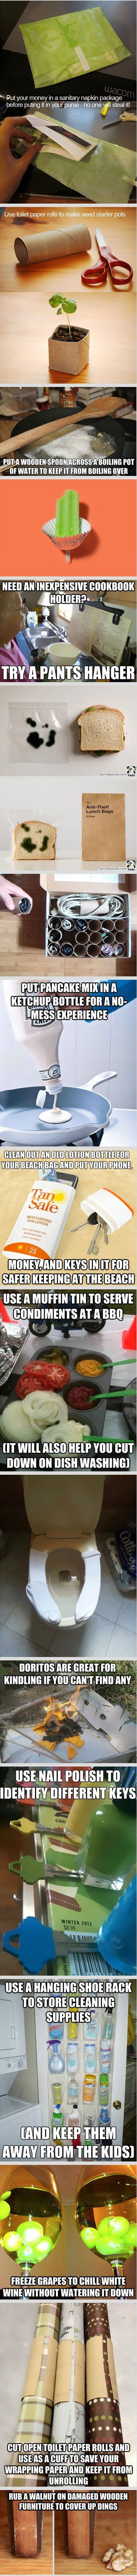 LOL - Creative life hacks - www.funny-pictures-blog.com